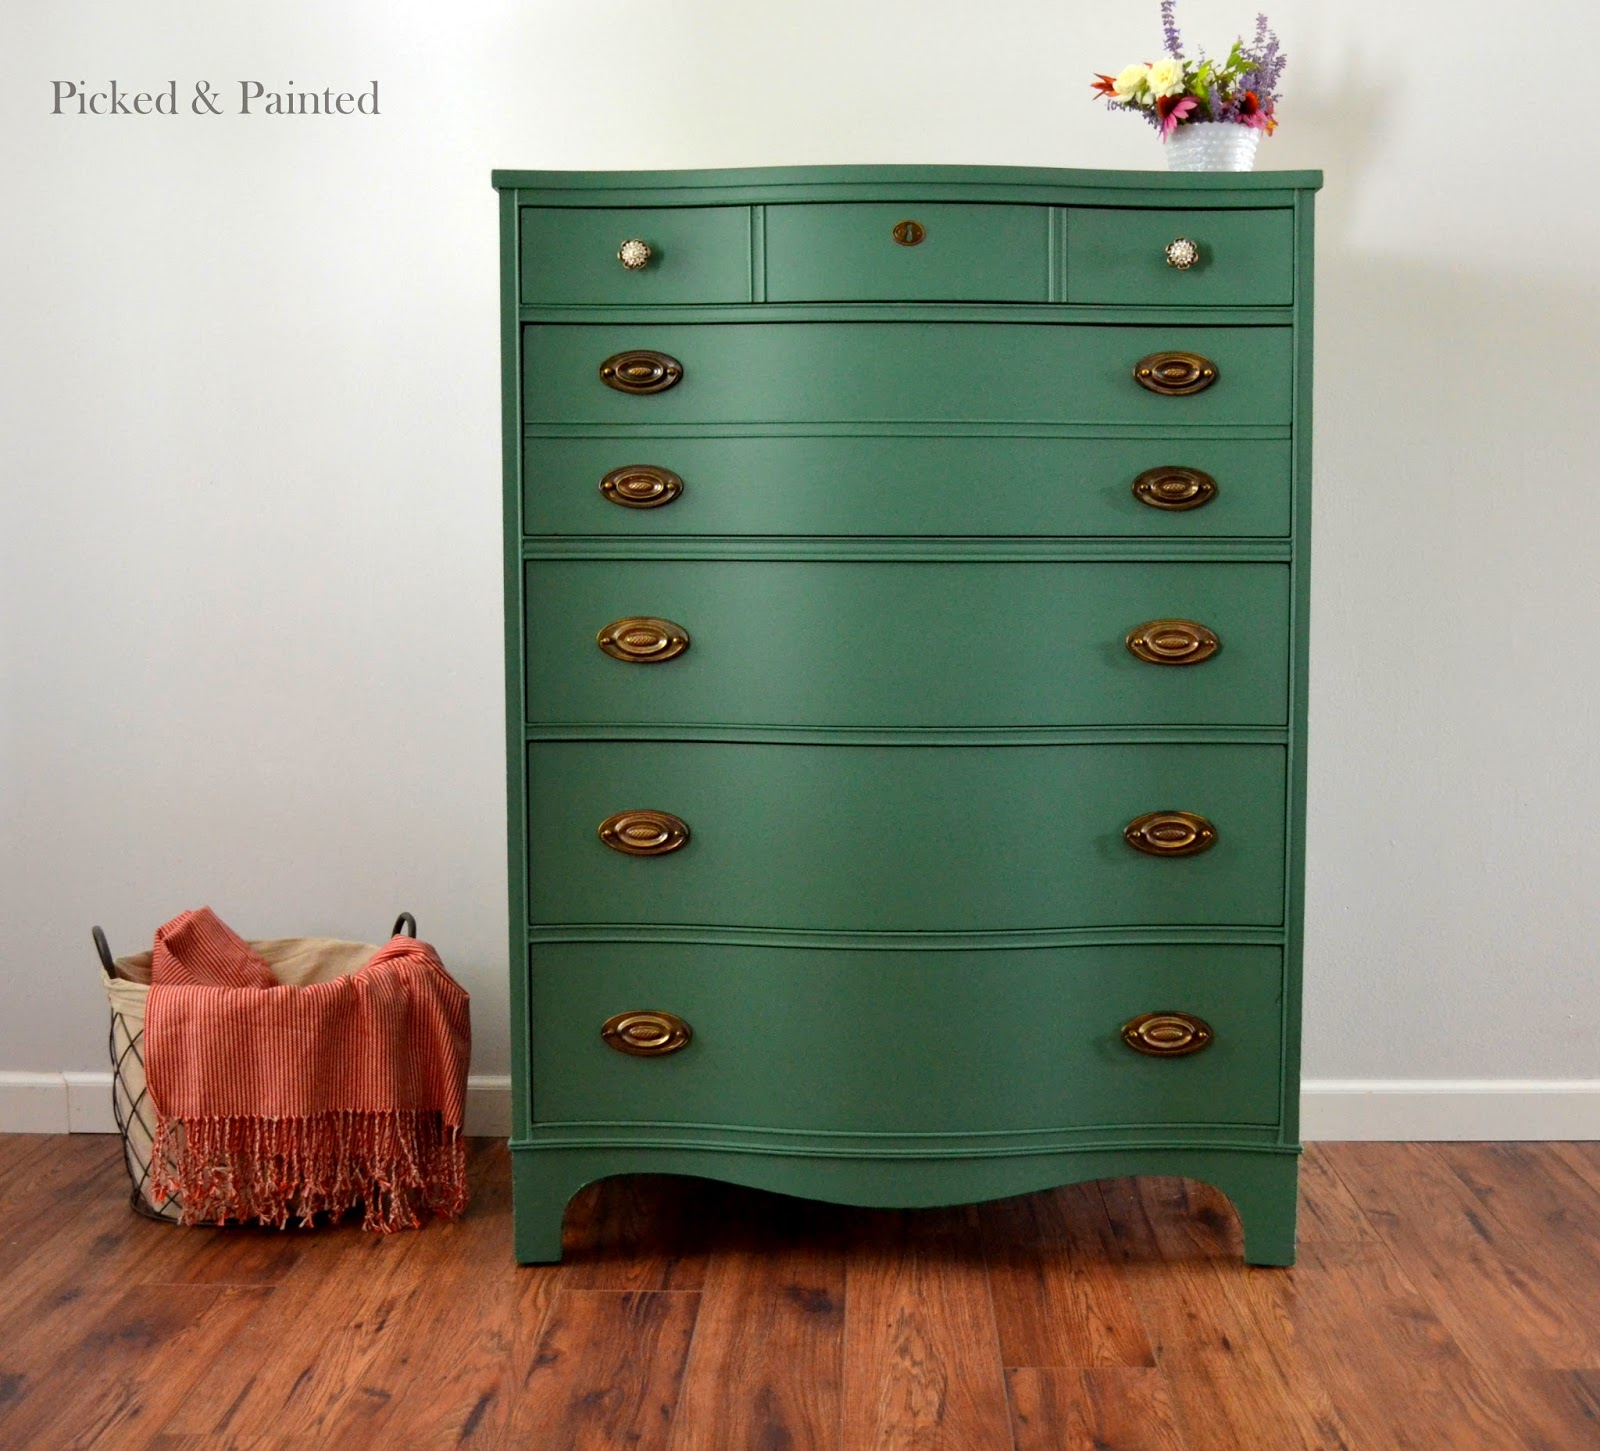 Helen nichole designs when coastal blue lime green come Best color to paint dresser